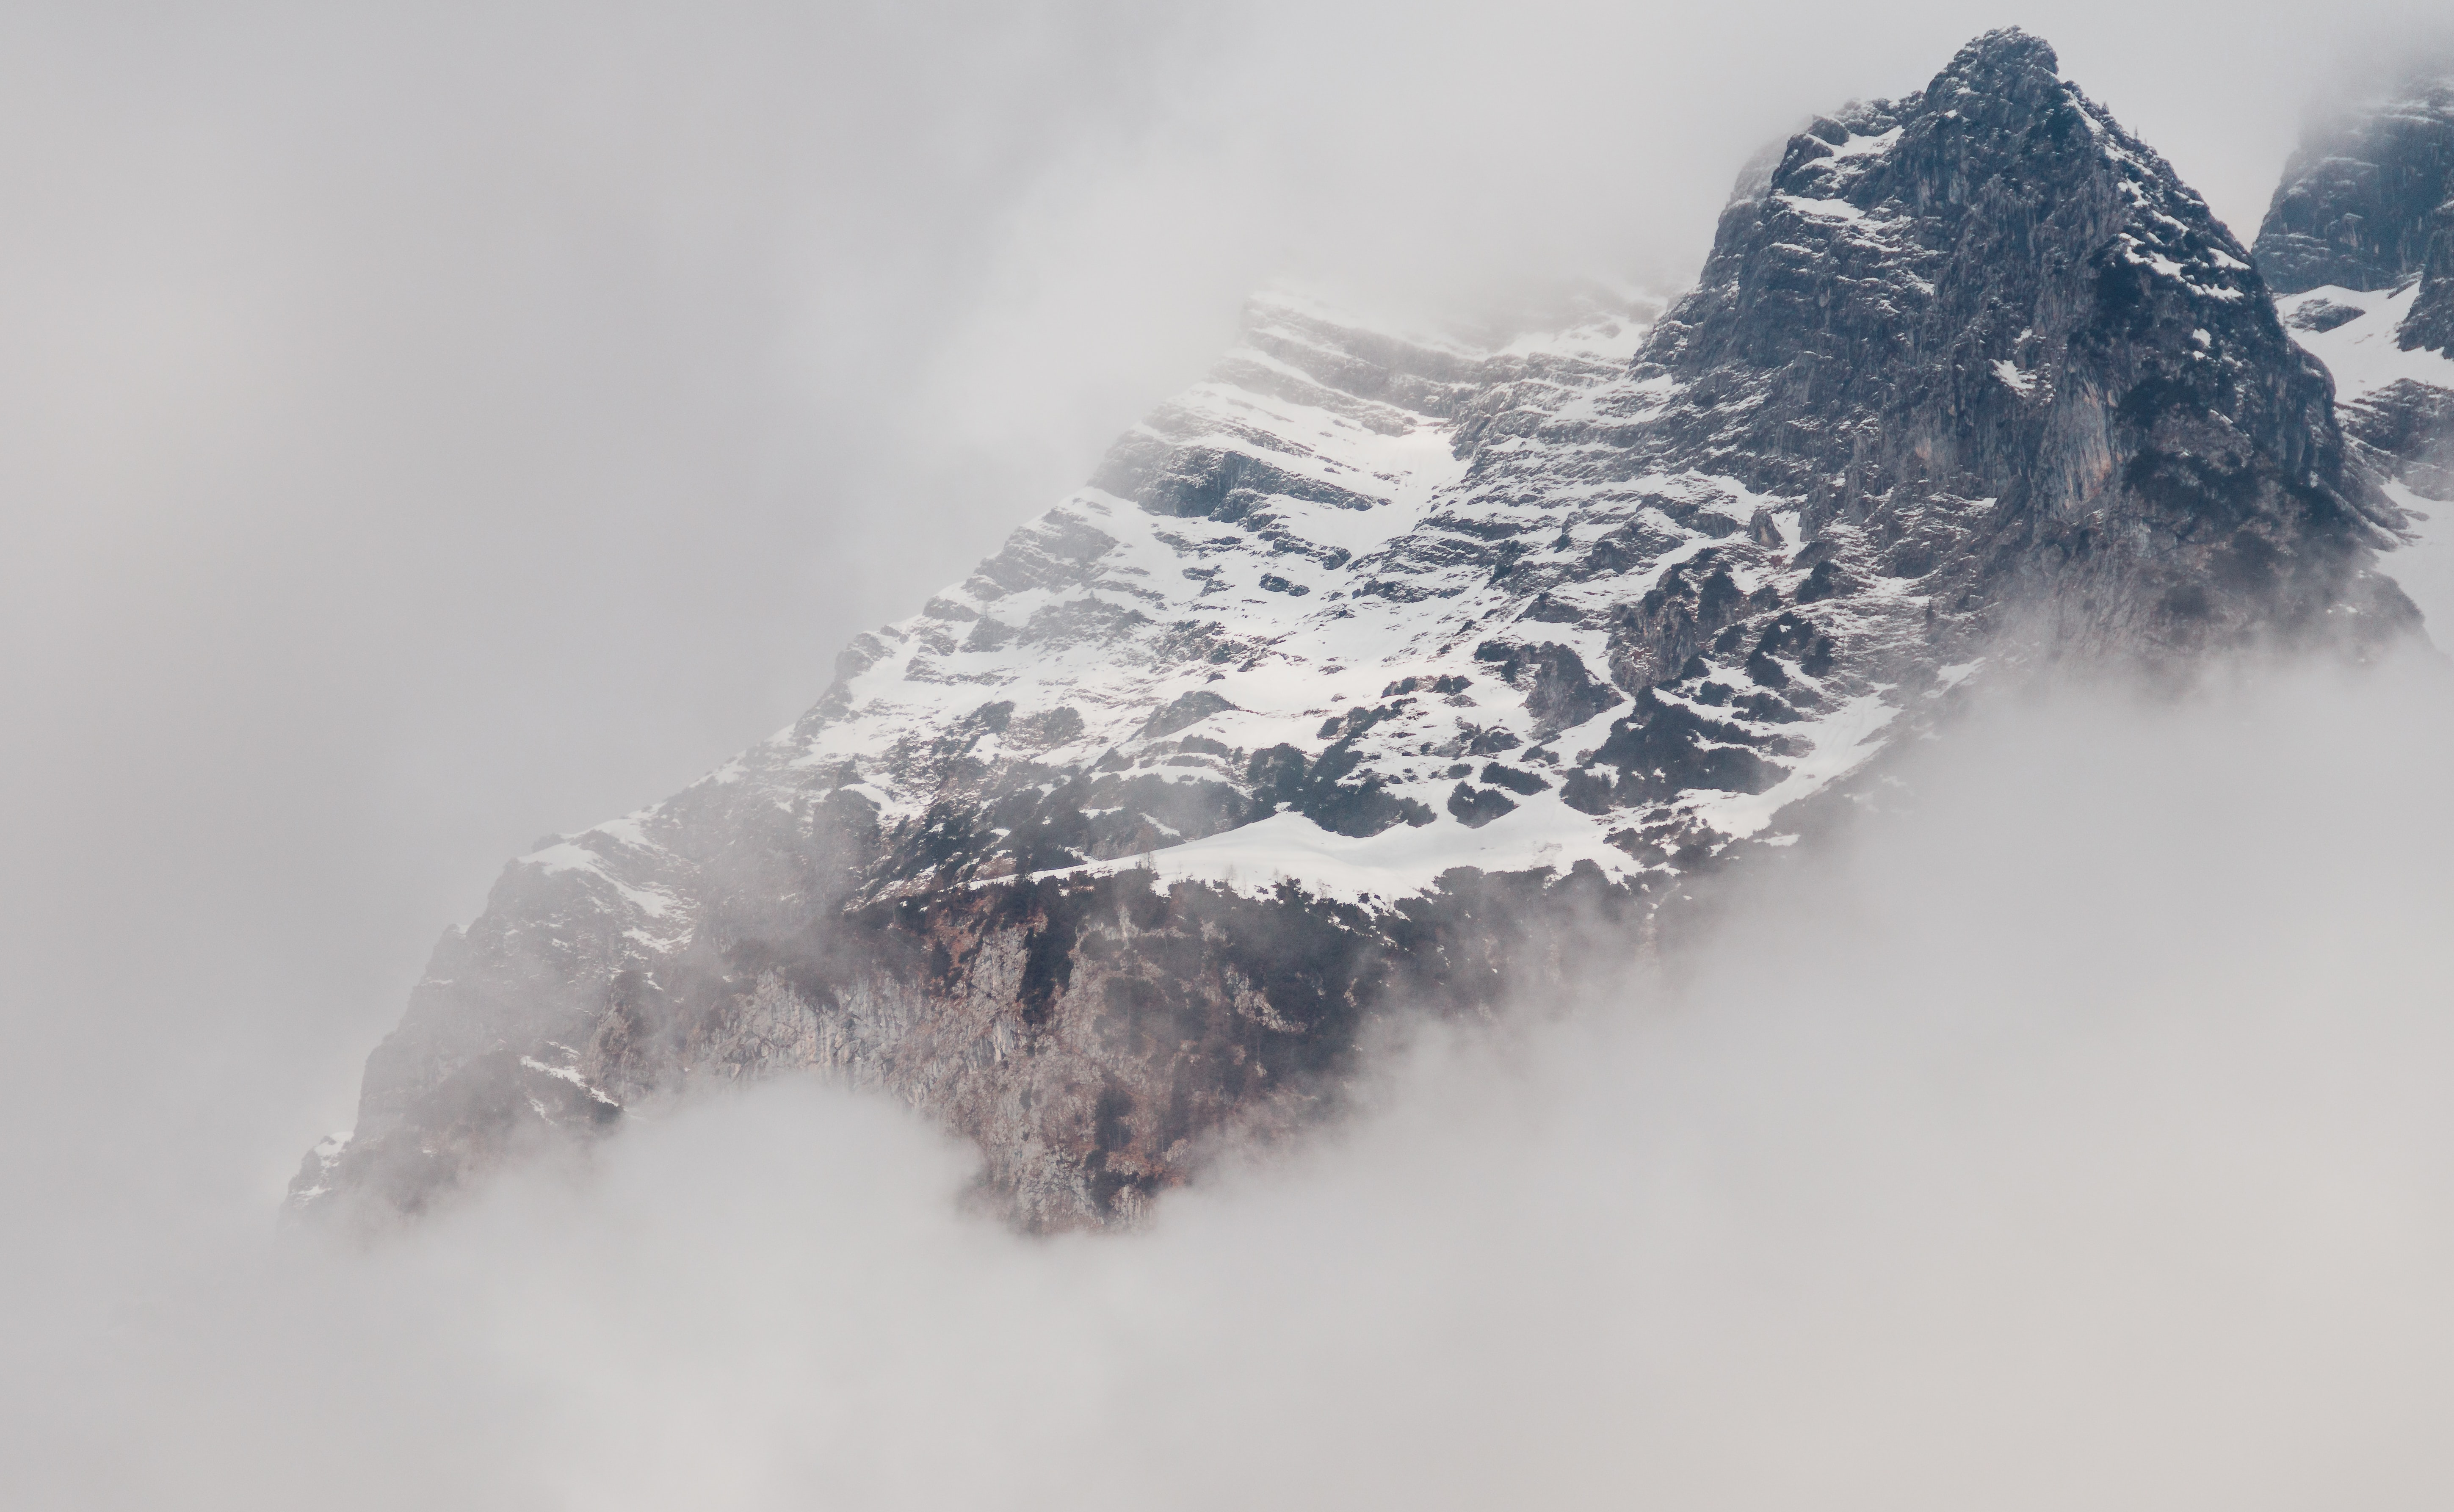 A snowy mountain partially obscured by a thick mist